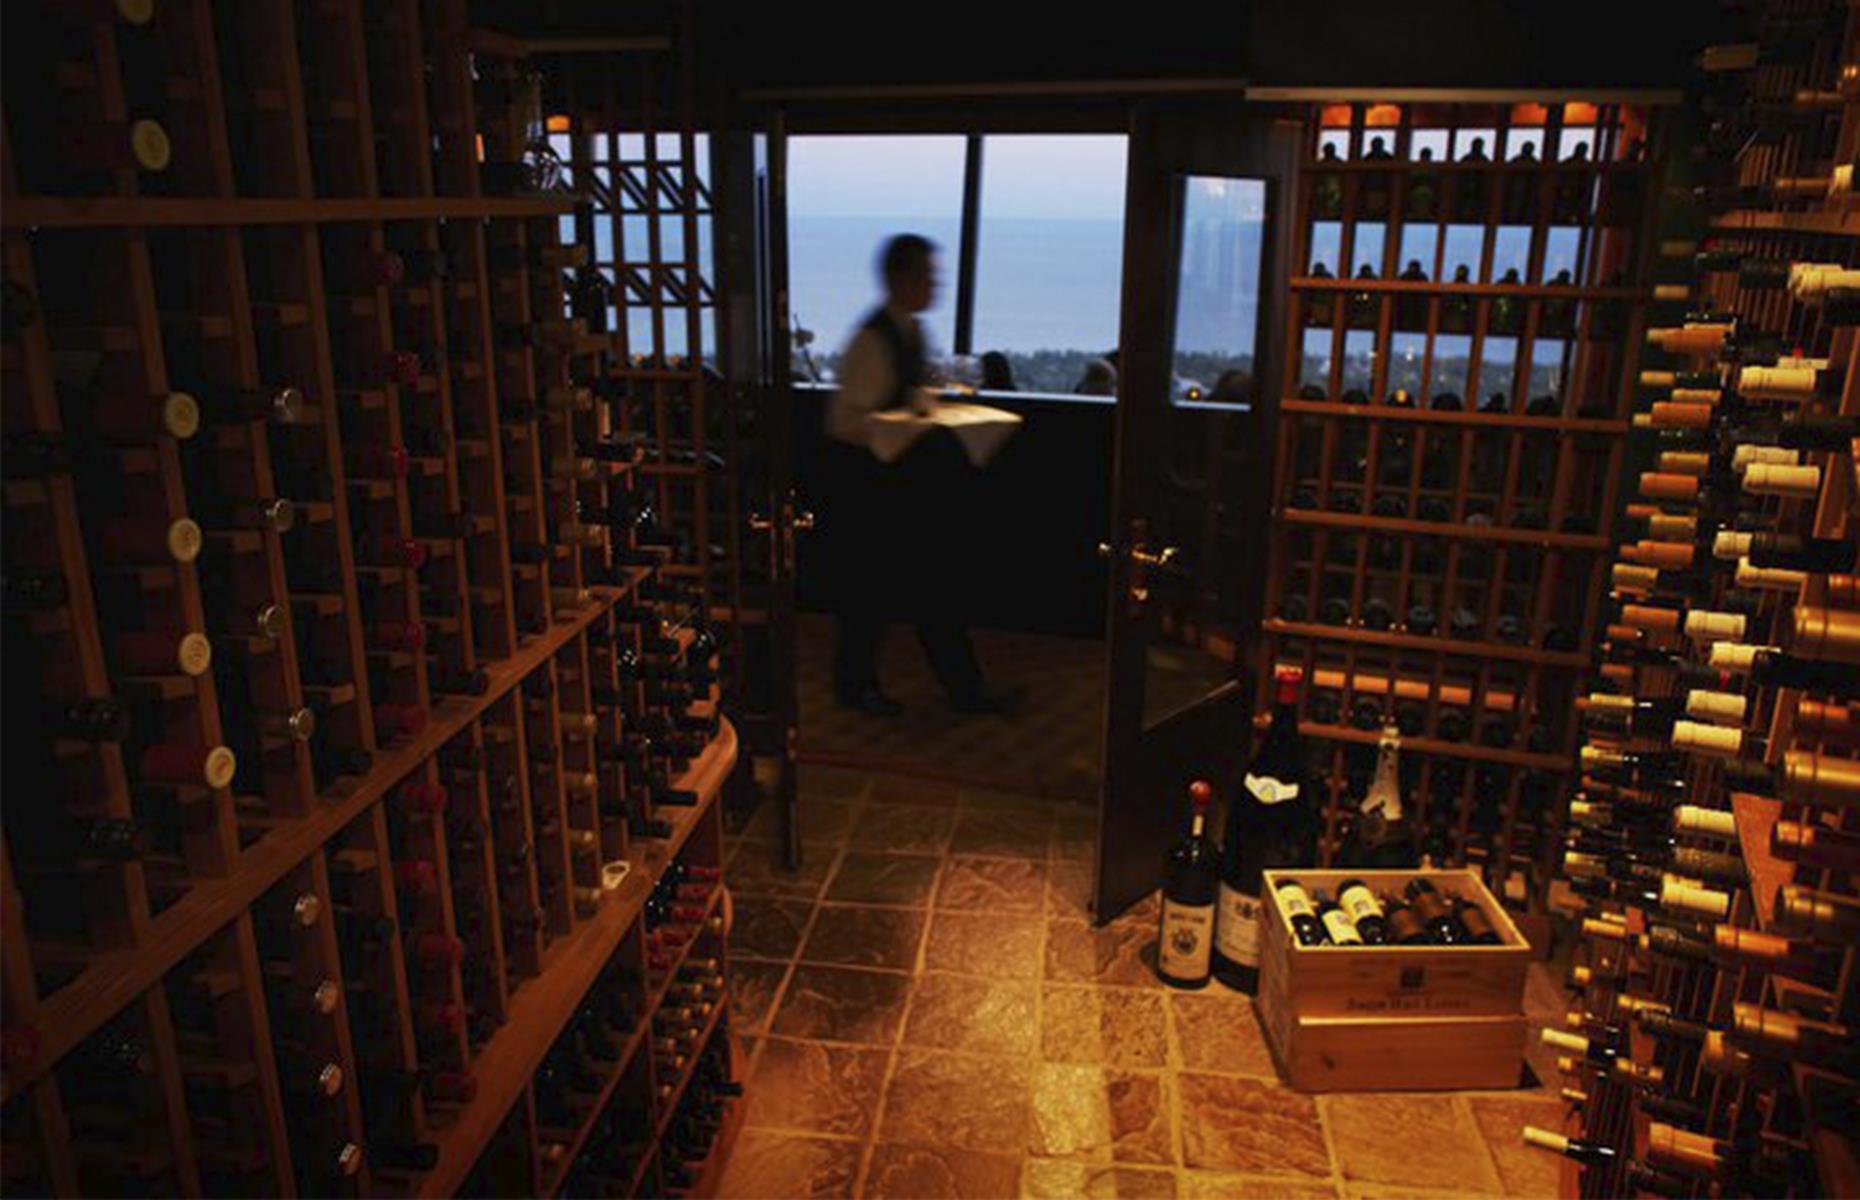 Slide 5 of 45: While most visitors know about the restaurant at the top of the tower, few know about 360Restaurant's wine cellar, which holds the Guinness World Record for being the world's highest. It looks just like a typical underground wine cellar and stores 9,000 bottles of wine within a humidity and temperature controlled room. The redwood rack room, with double cherry doors and a tasting table is a must-visit for wine connoisseurs. Read our guide to Toronto for tips on where to stay and what to do when it's safe to travel.